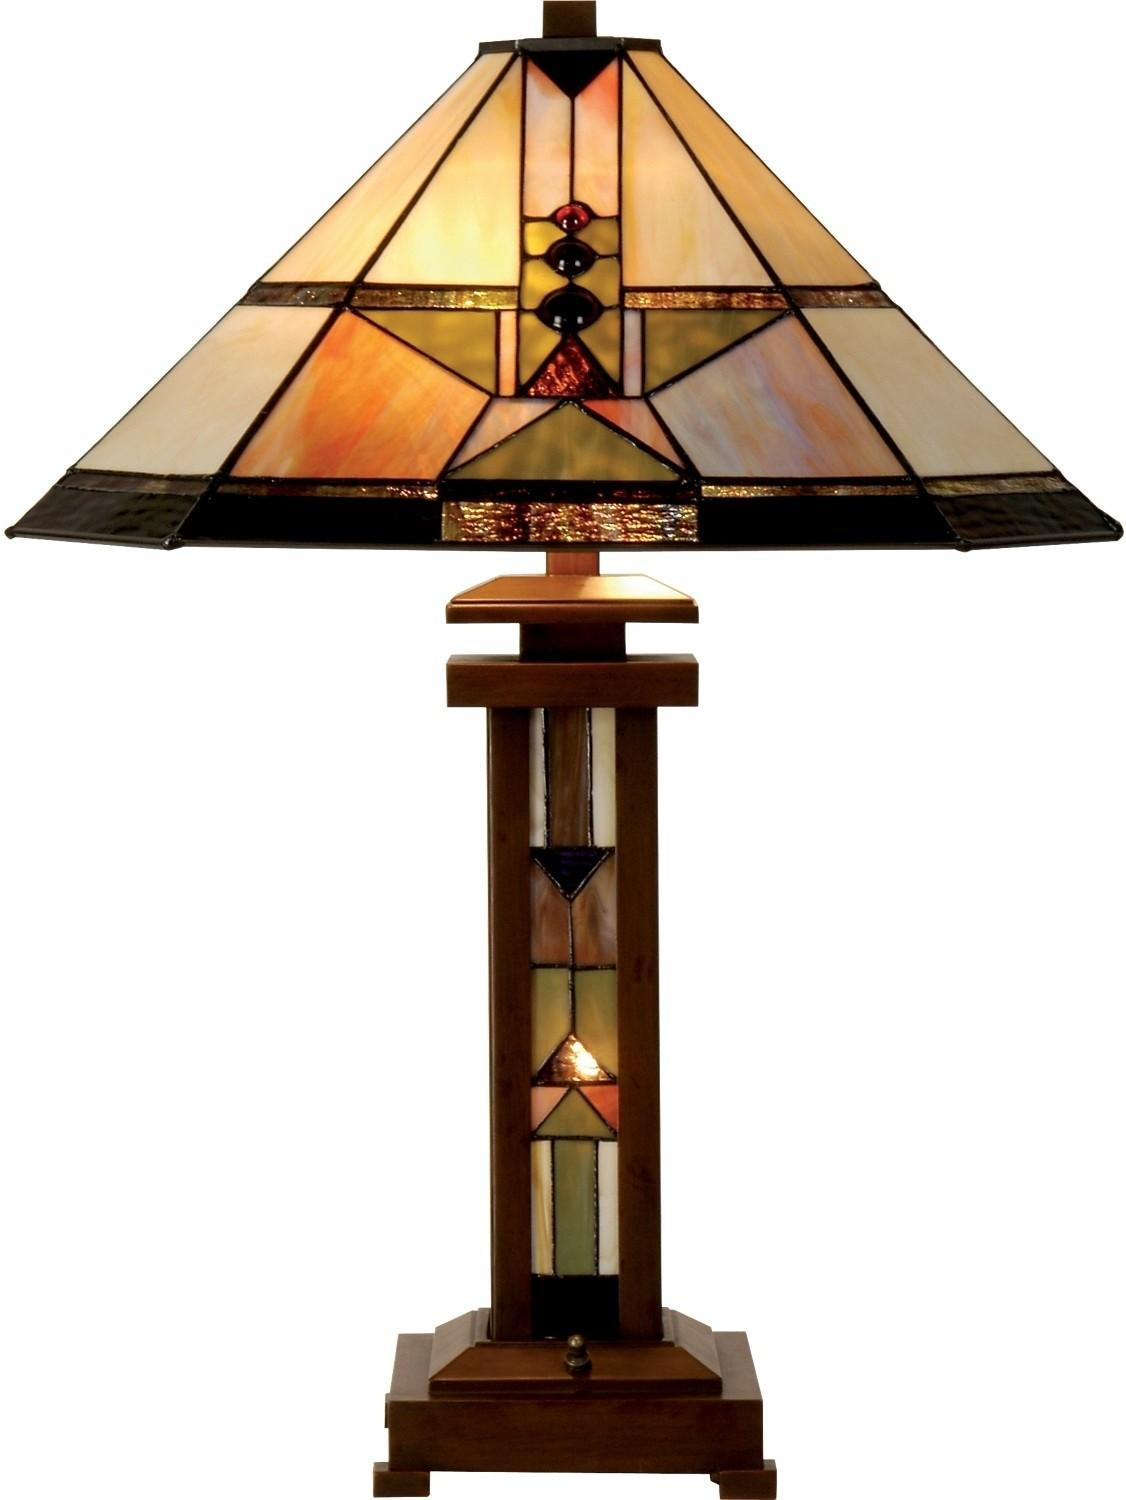 Drake Table Lamp Stained Glass Shade Brick